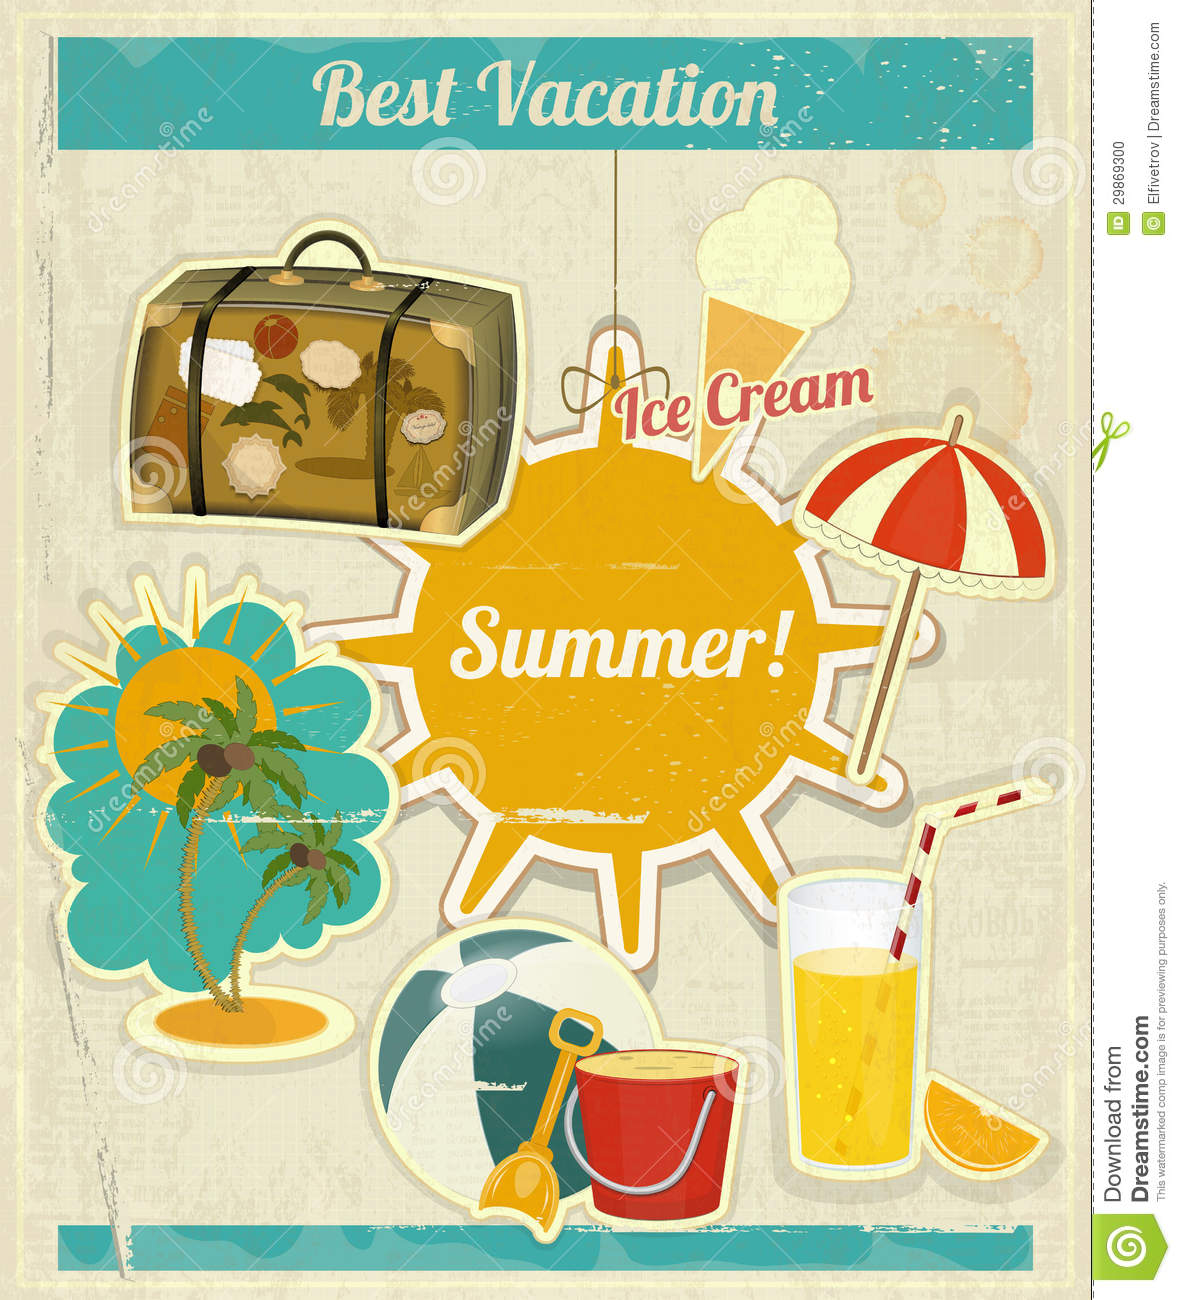 Summer travel card in retro style vintage vacation postcard with - Summer Vacation Card In Vintage Retro Style Stock Photo